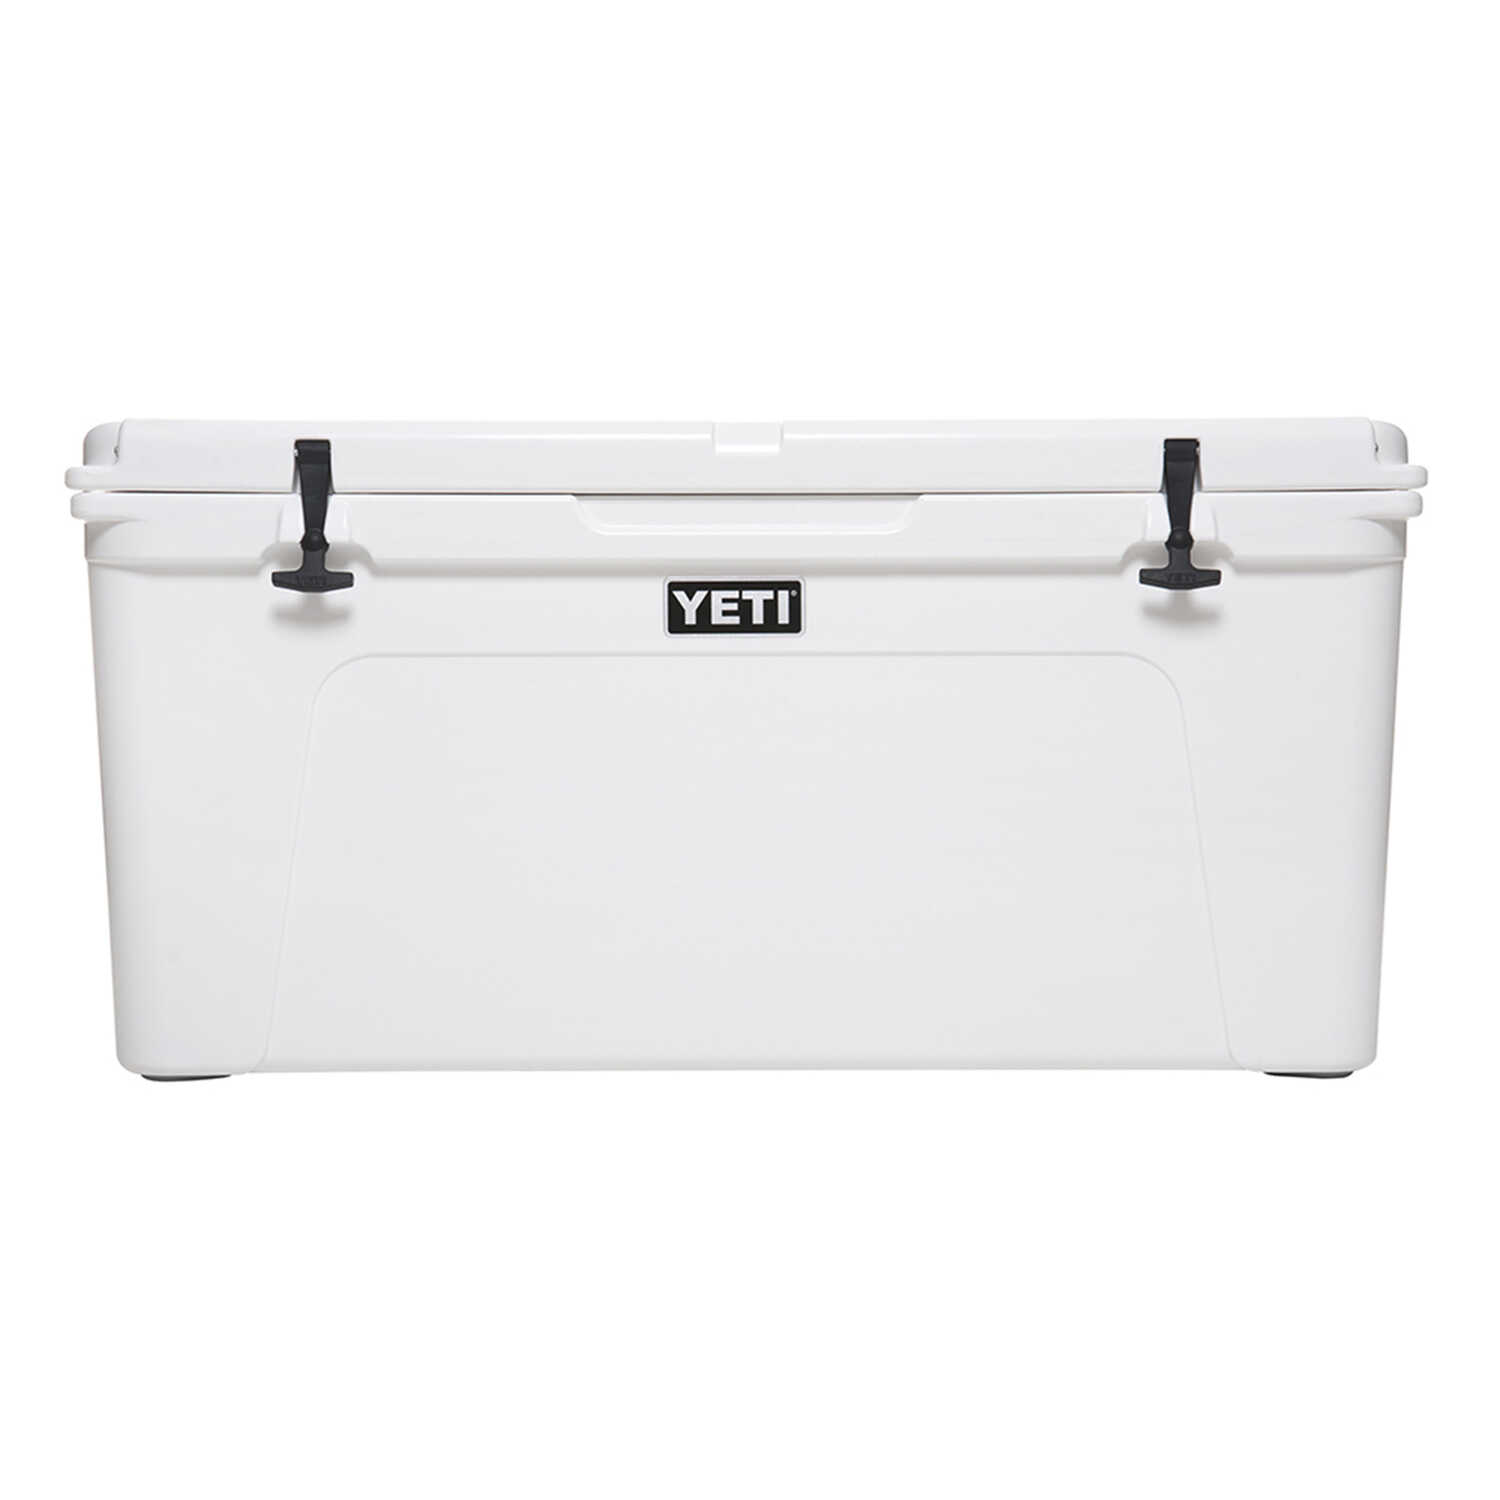 YETI  Tundra 125  Cooler  92 cans White